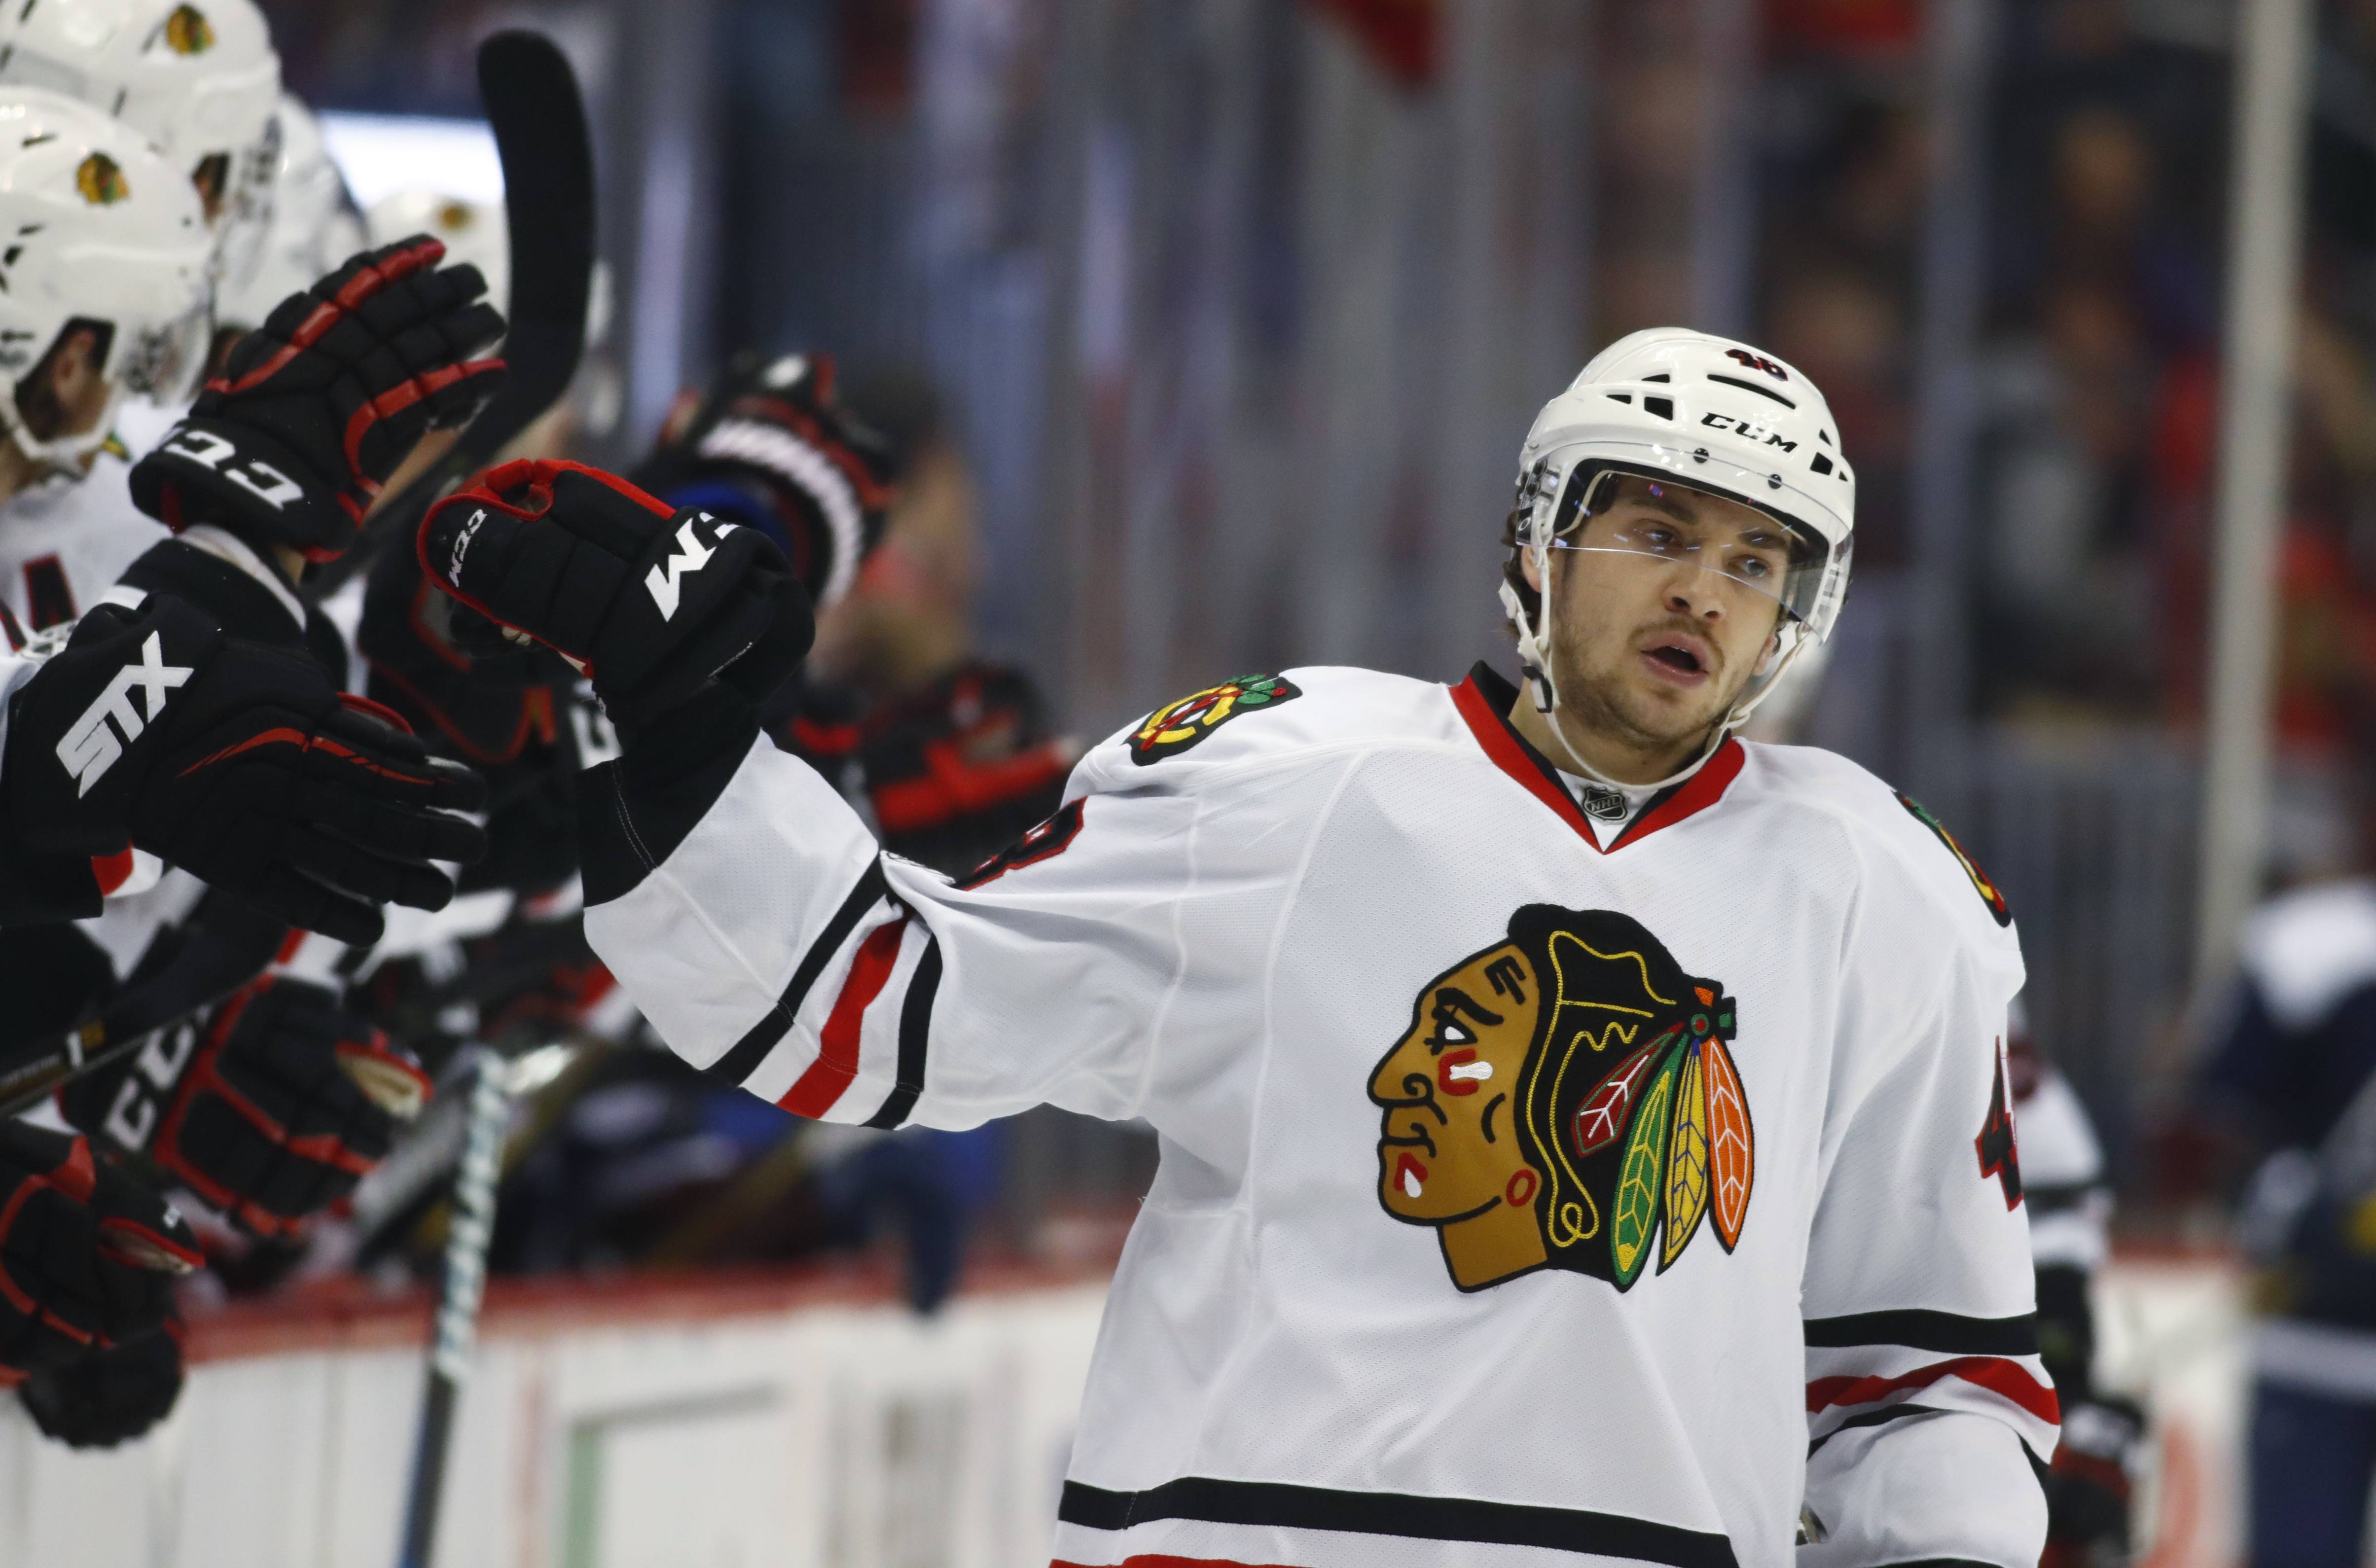 Left wing Vinnie Hinostroza is returning to the Chicago Blackhawks. The Bartlett native was recalled from Rockford, where he collected 22 points in 23 games for the IceHogs in AHL play this season.